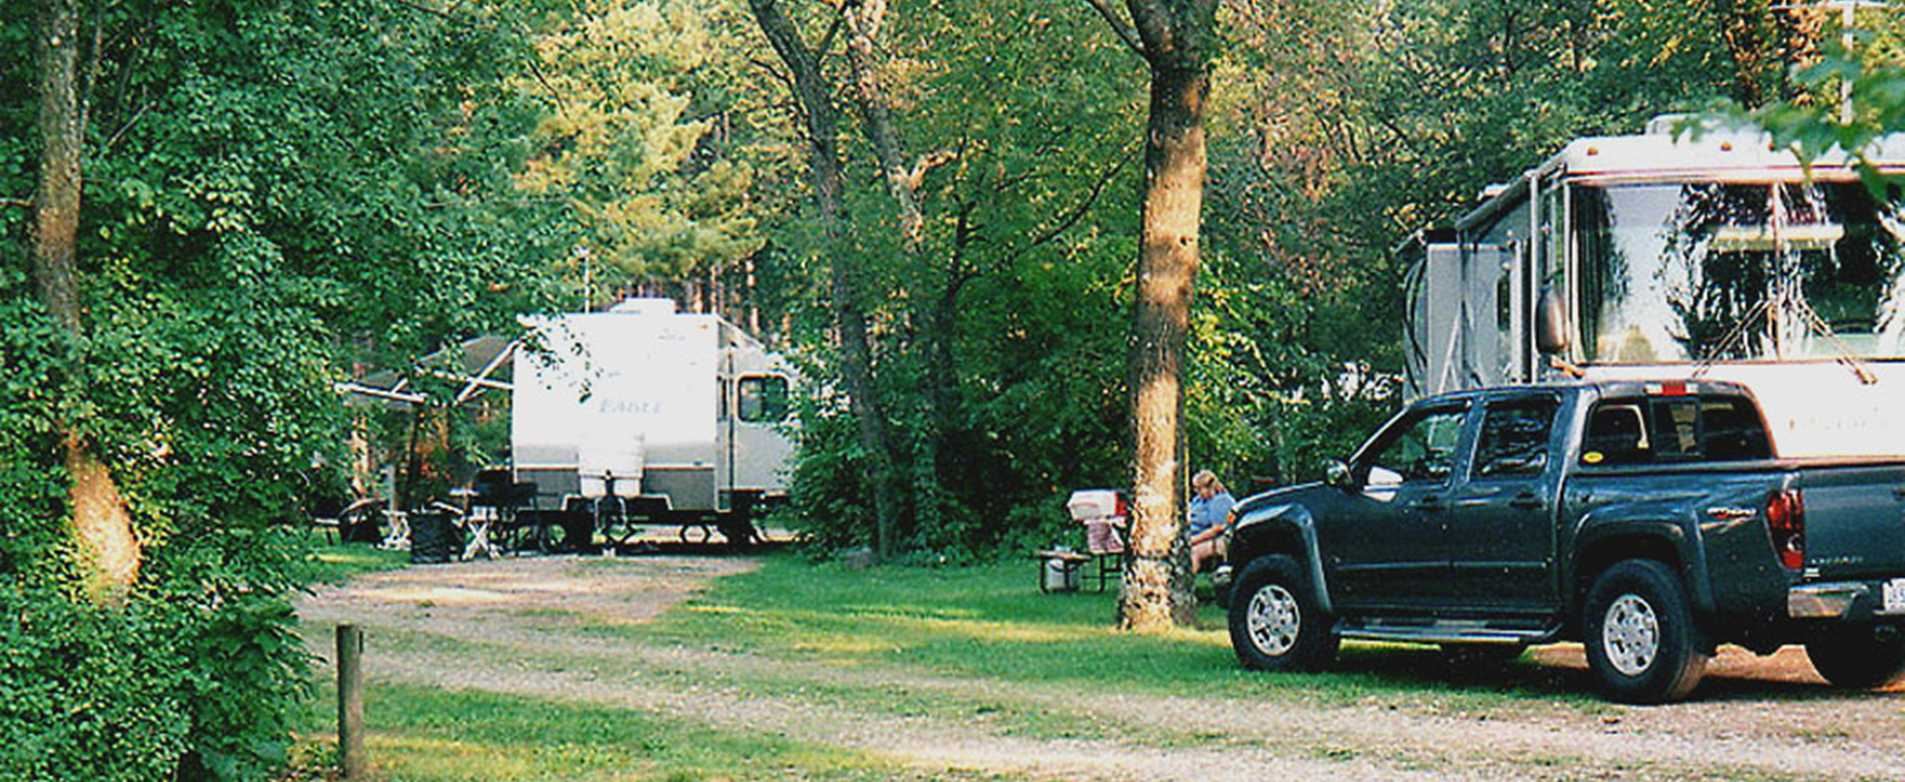 Dell Boo Campground